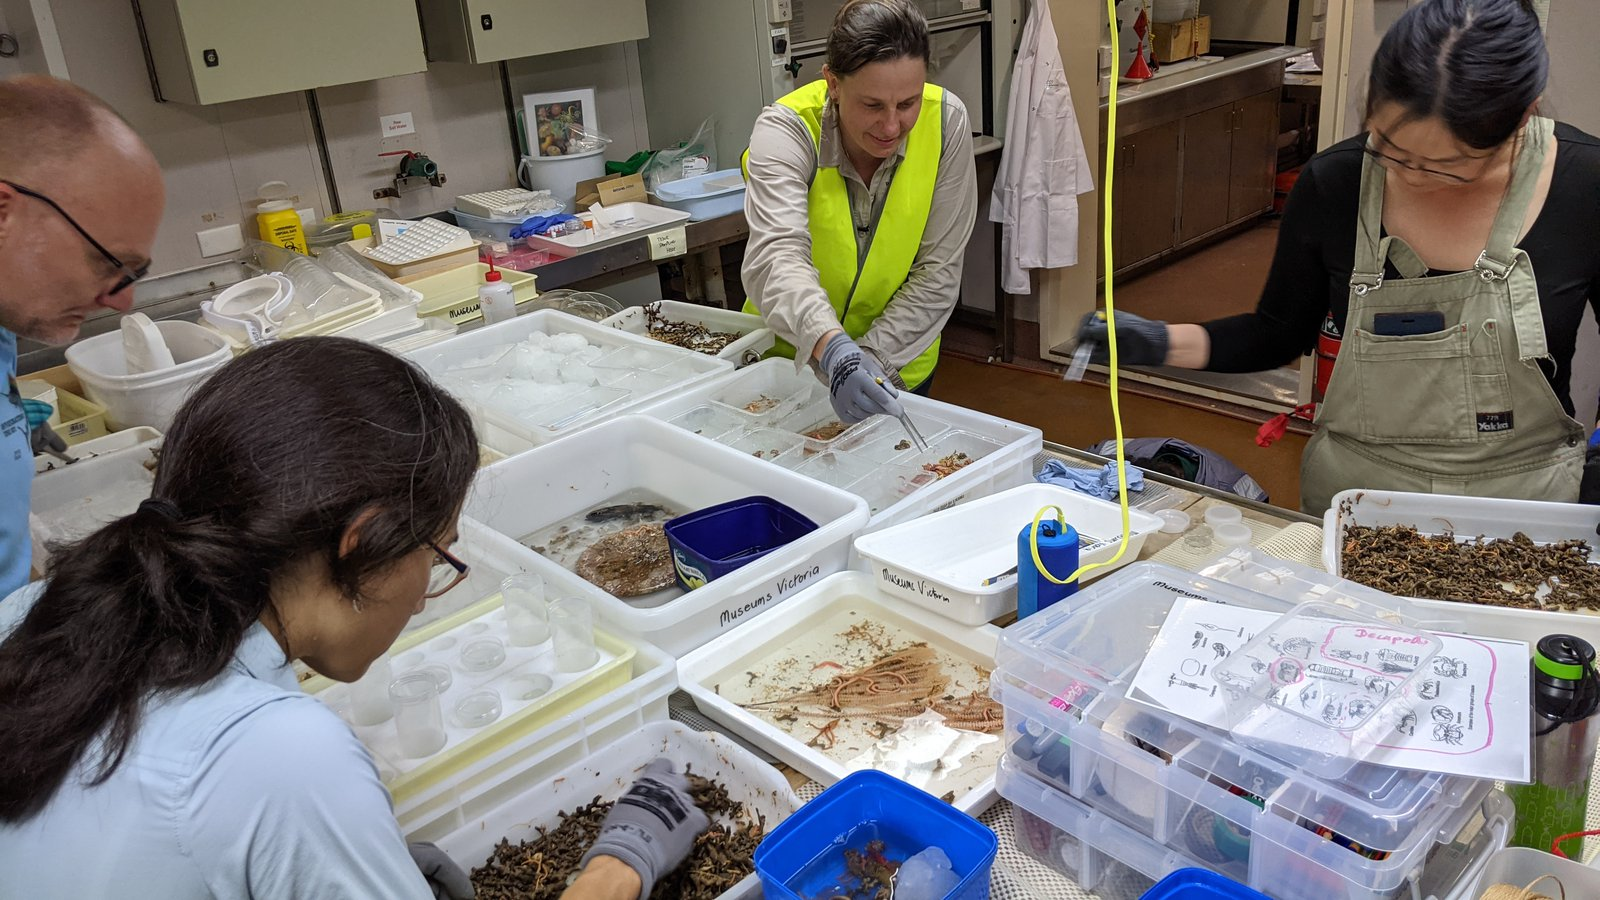 The frantic moments after the catch comes up: the sorting into different animal groups begins. Left to right: Frank Koehler (AM), Ana Hara (WAM), Kate Grarock (BushBlitz), and Alice Chen Yan (AM).